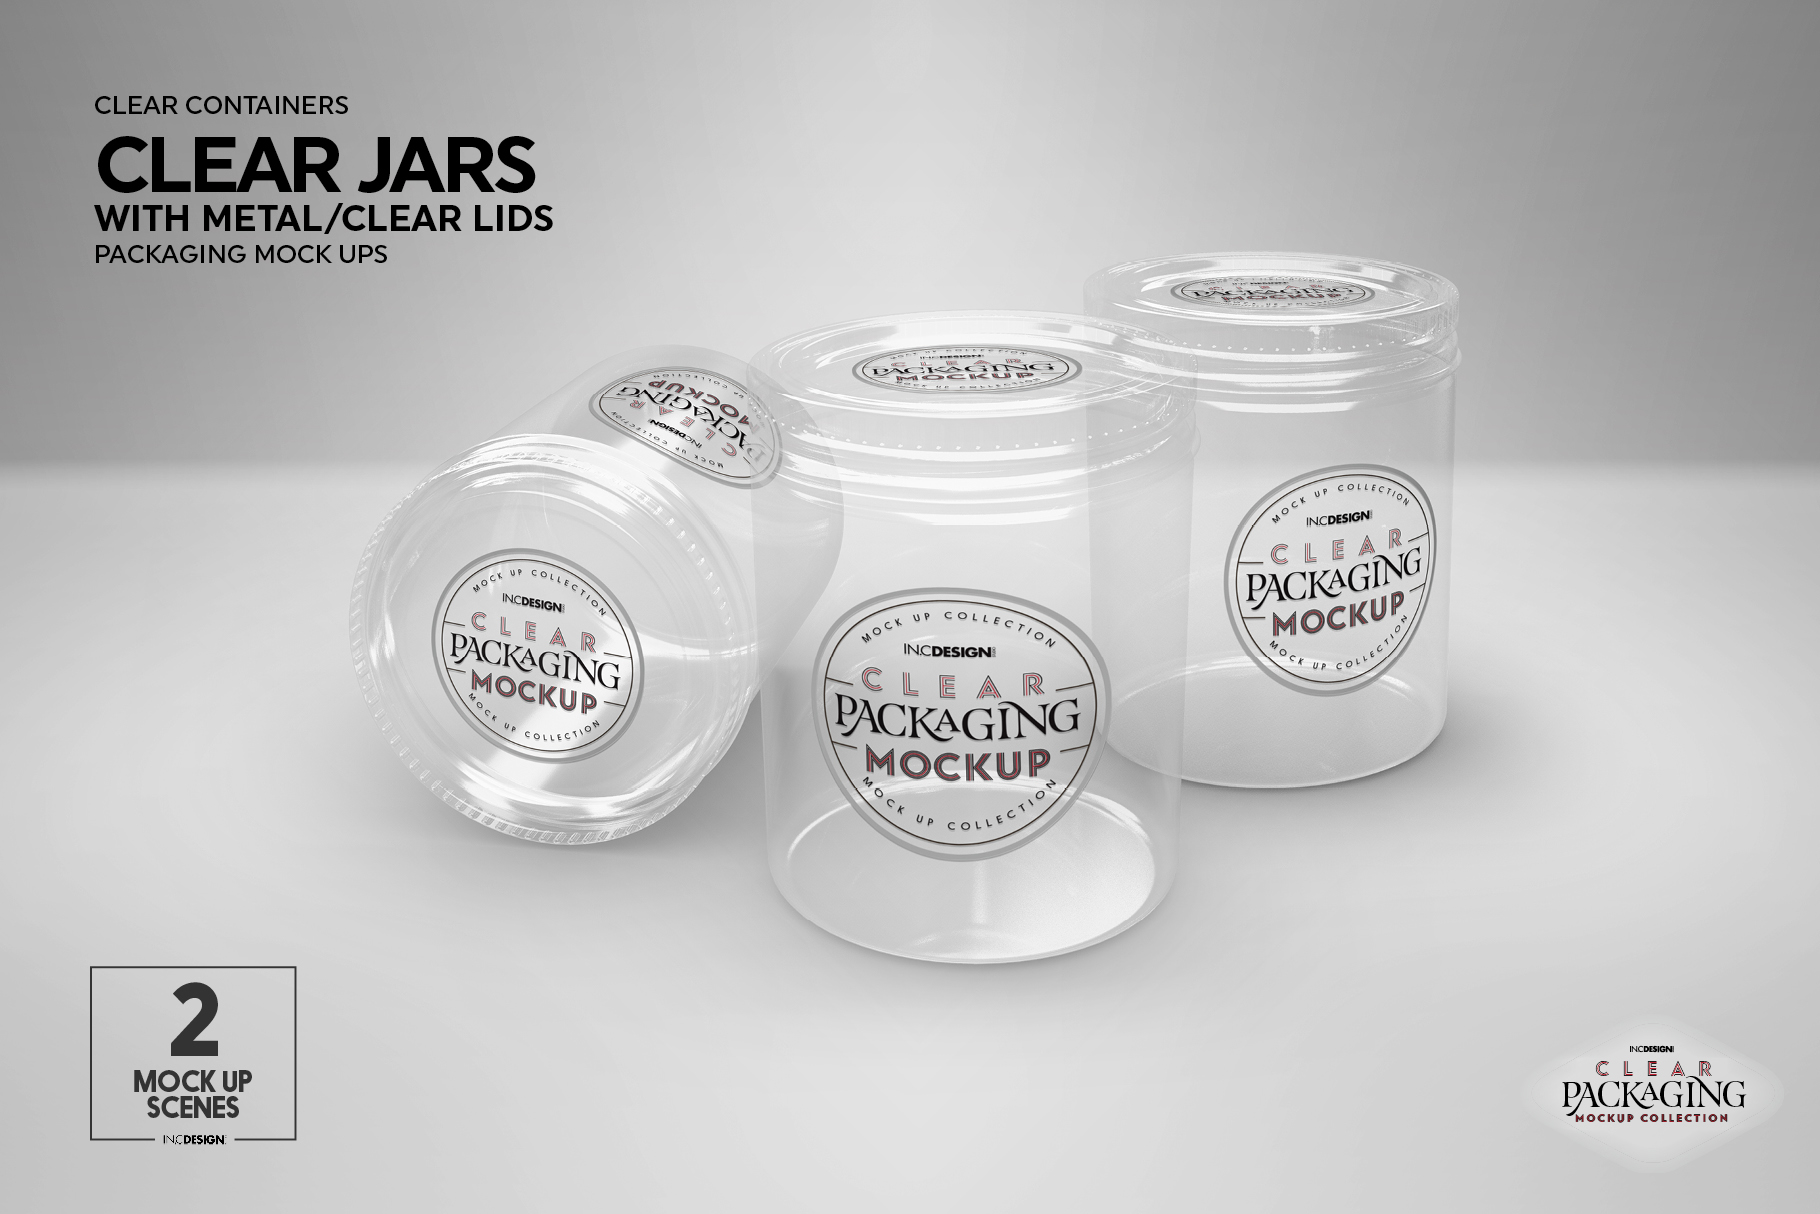 Clear Jars with Metal /Clear Lids Mockup example image 2